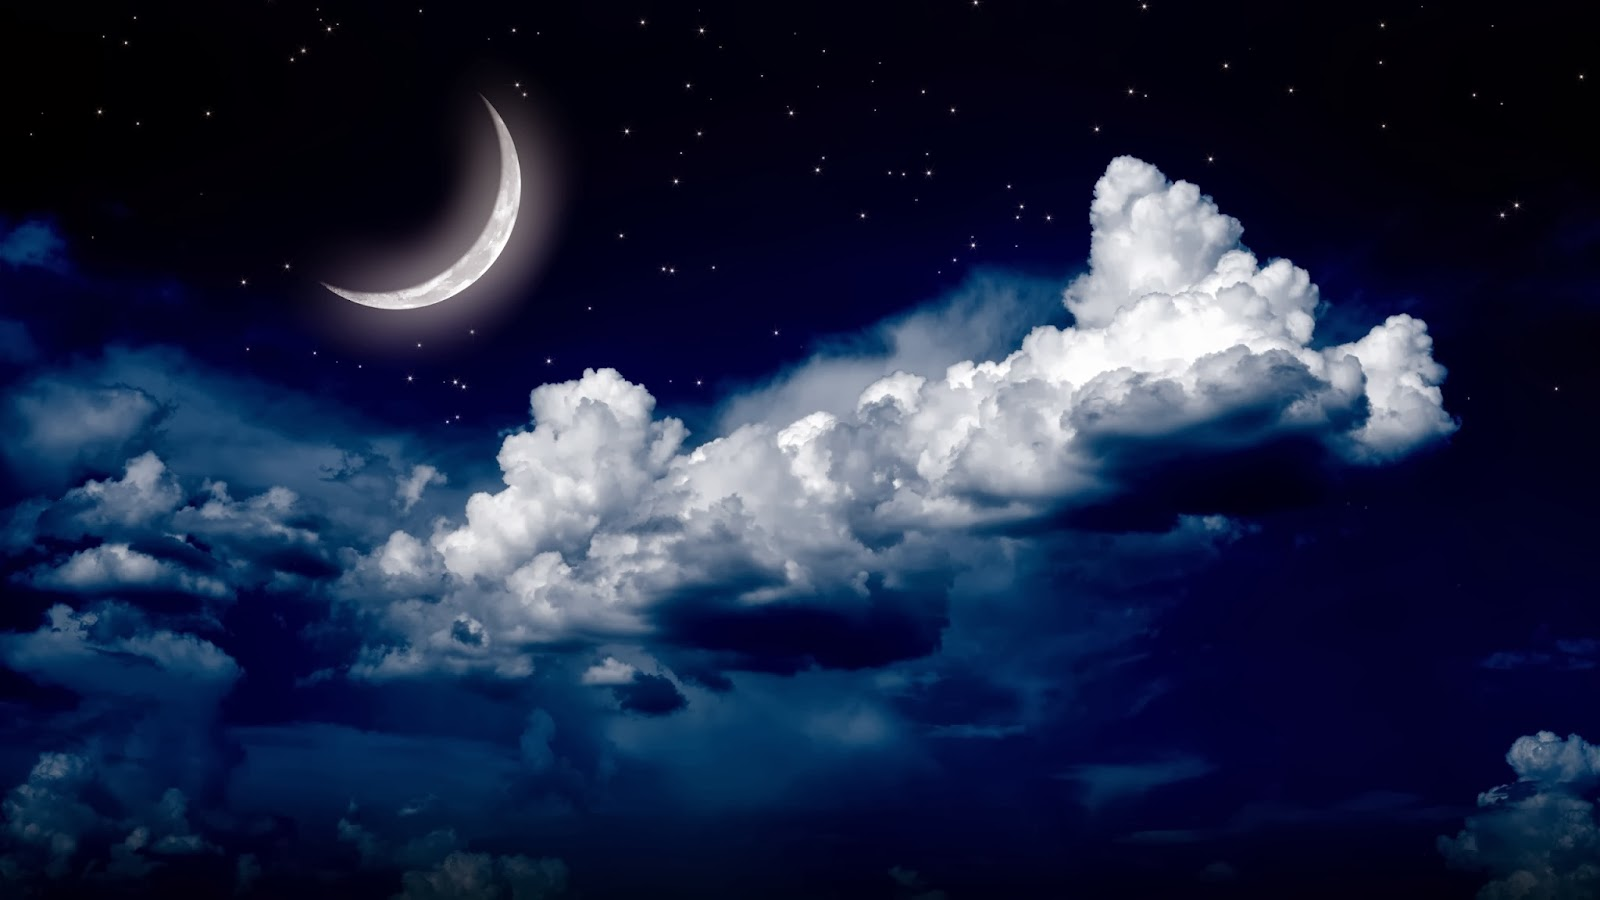 pretty moon wallpapers - photo #42